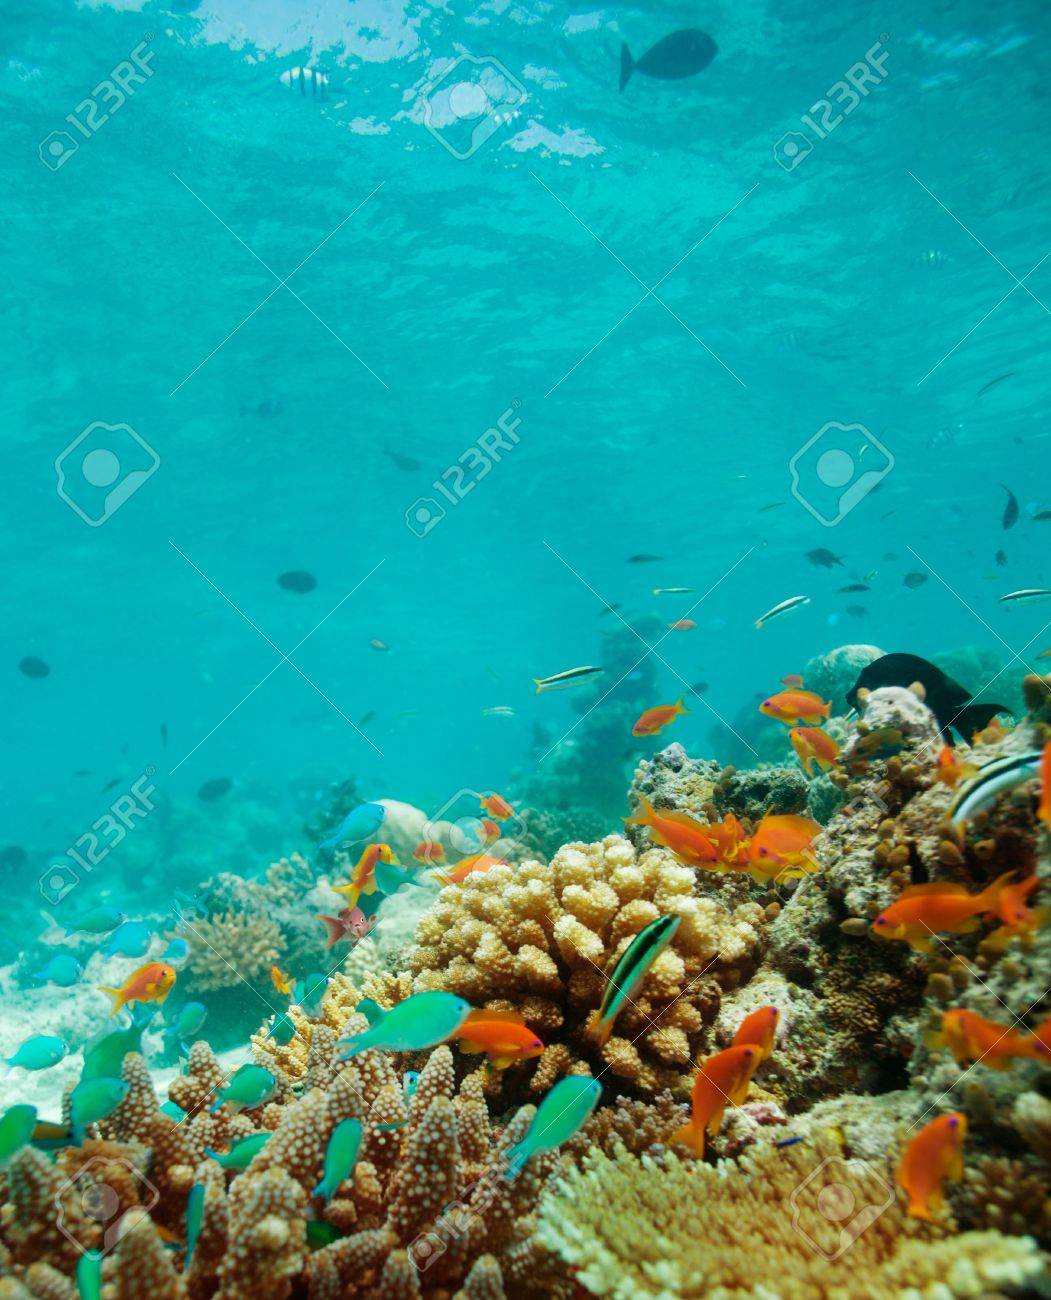 Colony of small fishes on the reef Stock Photo - 11749581